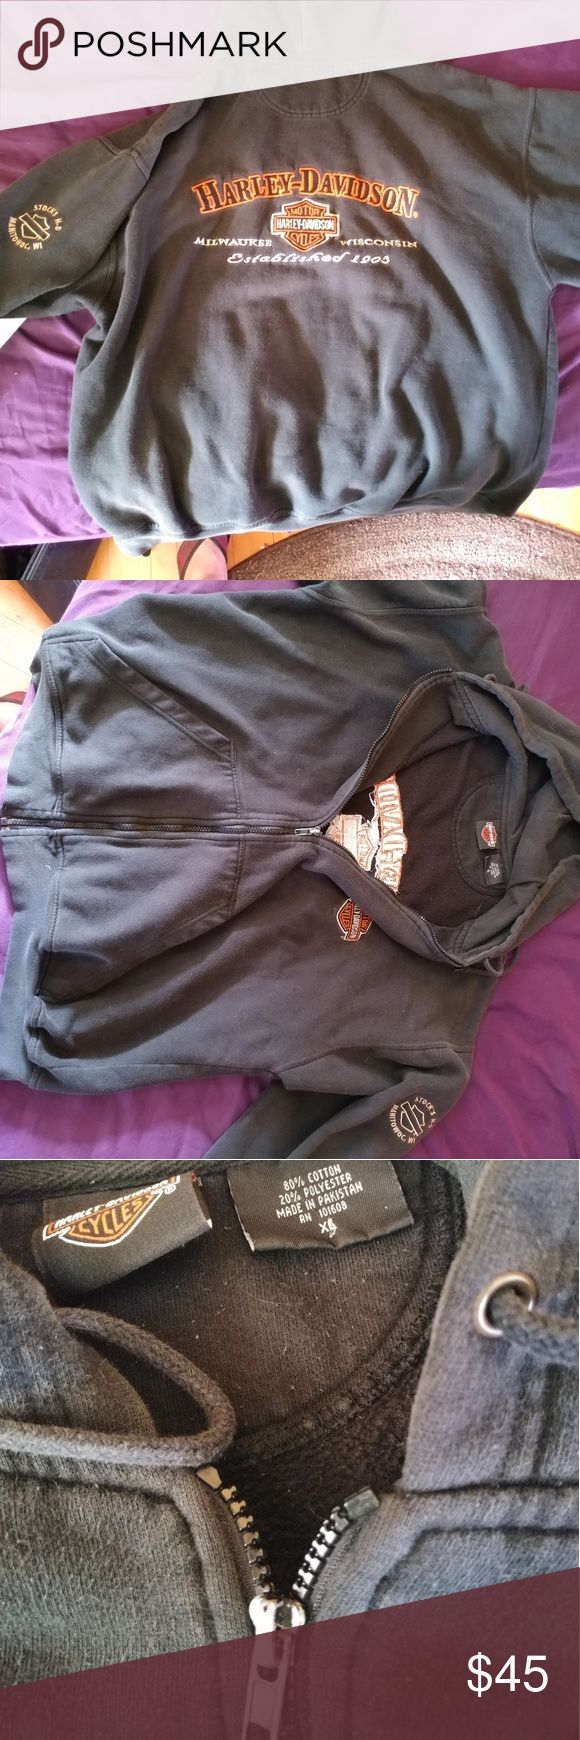 Harley Davidson XL women's hoodie Used hoodie, love it but it's a little too short for my liking, I like long hoodies. Absolutely nothing wrong with it. Zipper paint is chipping but works perfectly. No stains, holes, or rips. Price is negotiable, and I have other Harley apparel in my closet! Thank you for looking! Harley-Davidson Tops Sweatshirts & Hoodies